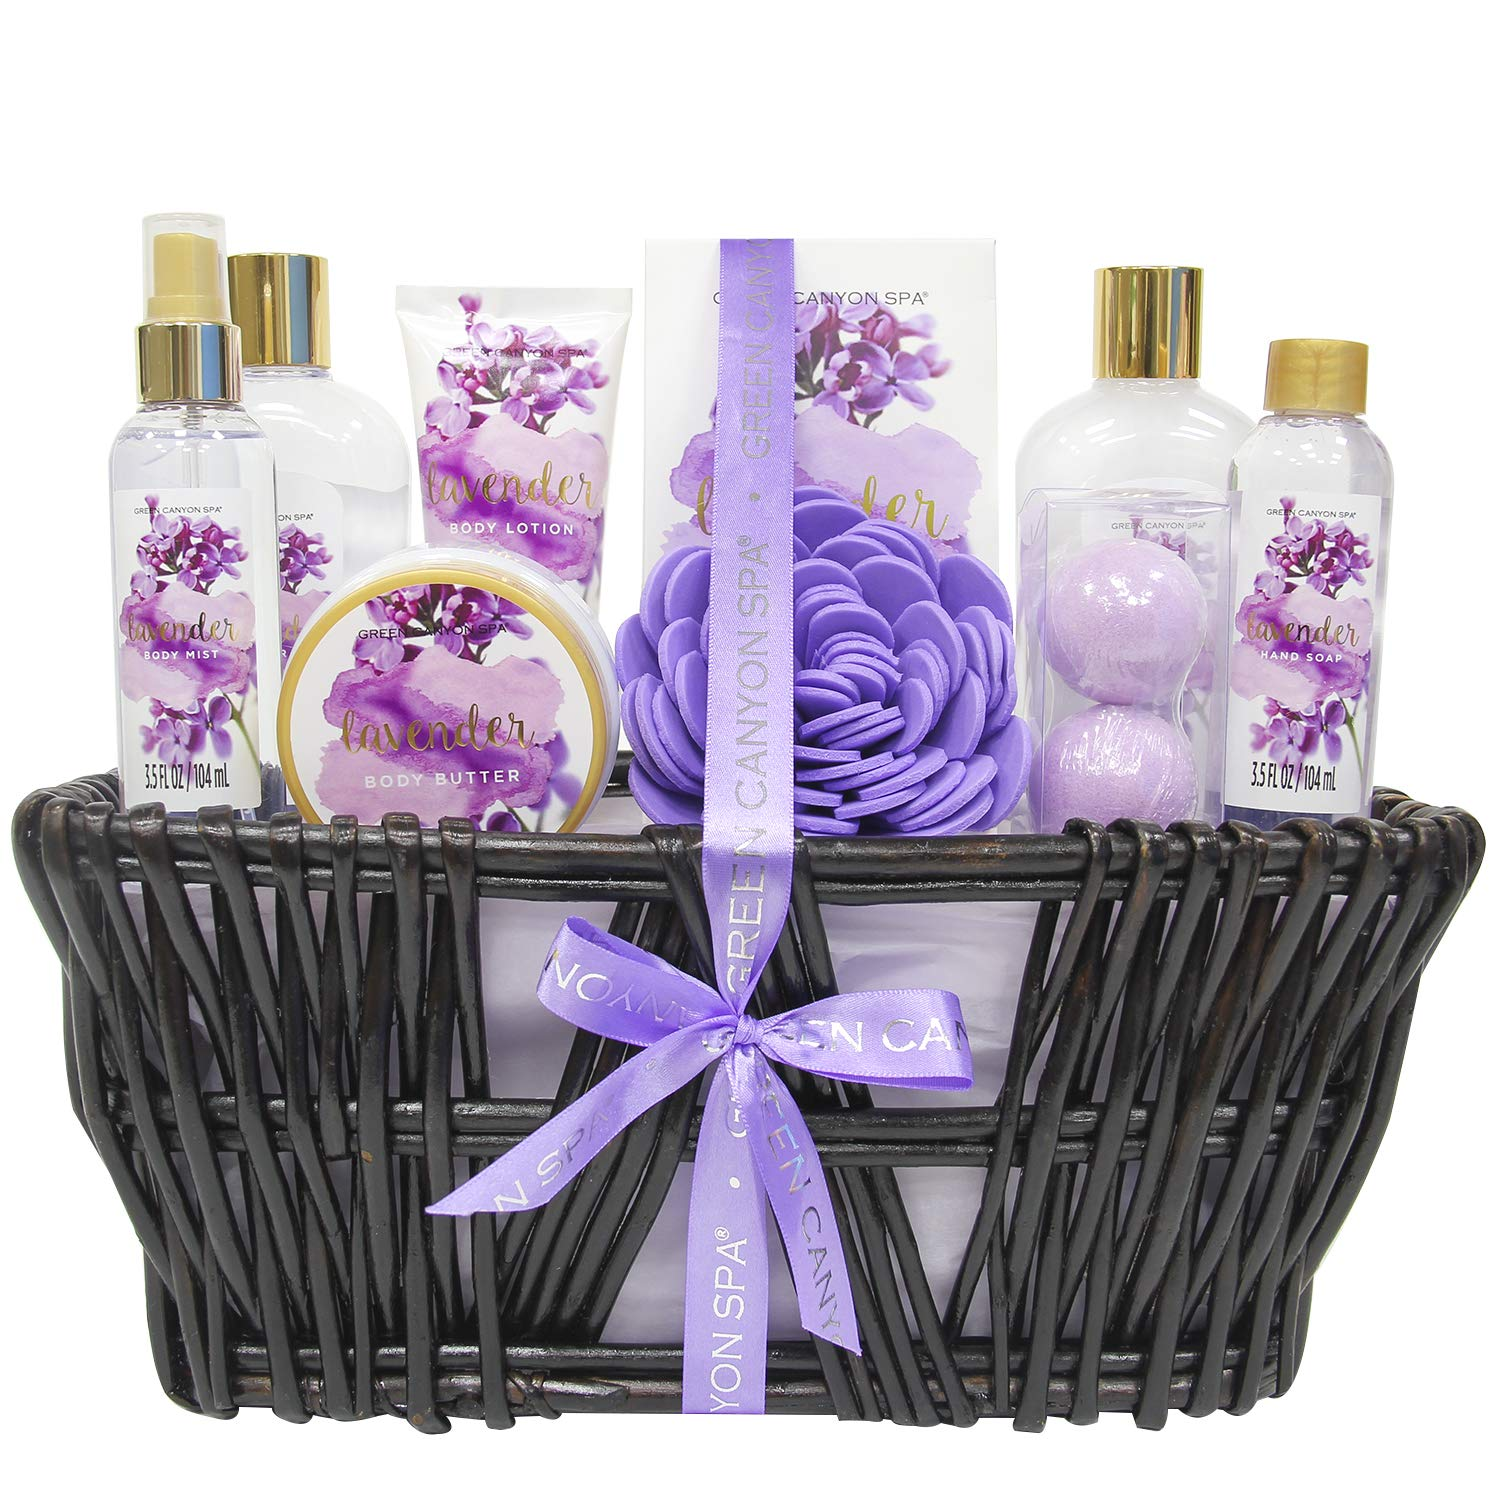 Green Canyon Spa Lavender Spa Gift Baskets for Women, Christmas / Birthday Gift Ideas 10 Pcs Spa Gift Sets with Handmade Weaved Basket